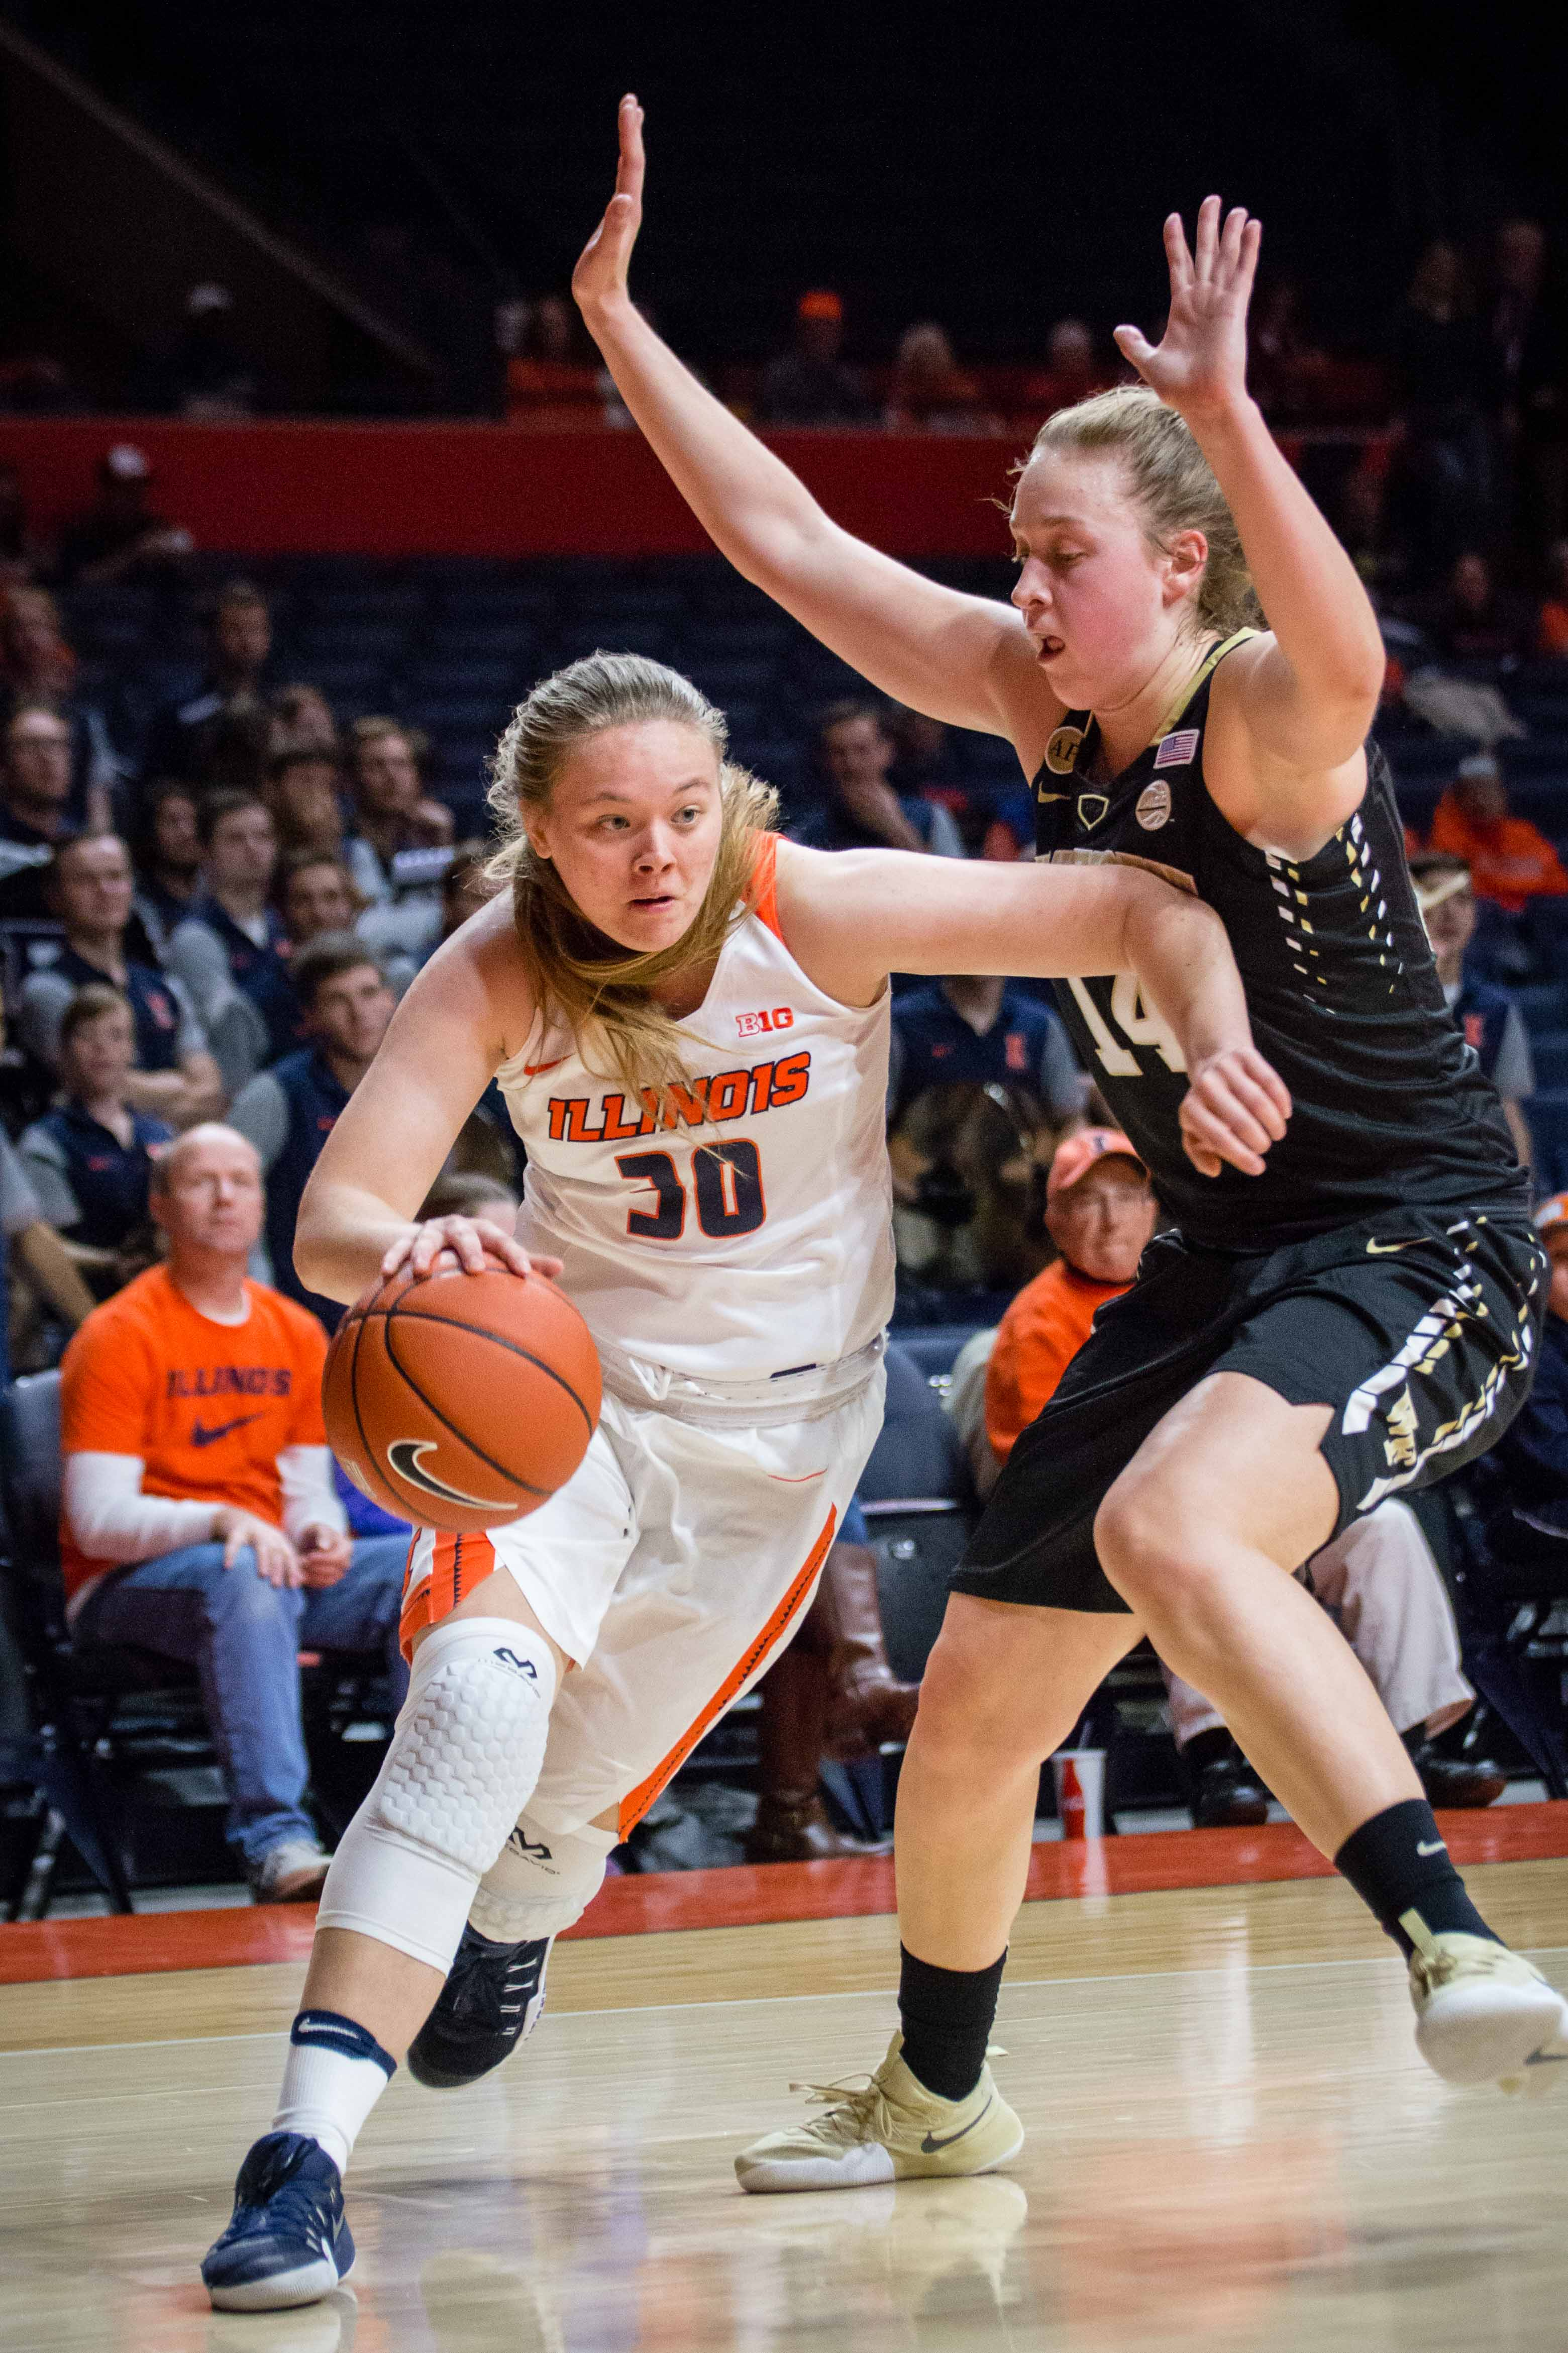 Illinois' Courtney Joens (30) drives to the basket during the game against Wake Forest at State Farm Center on Wednesday, November 30. The Illini lost 79-70.